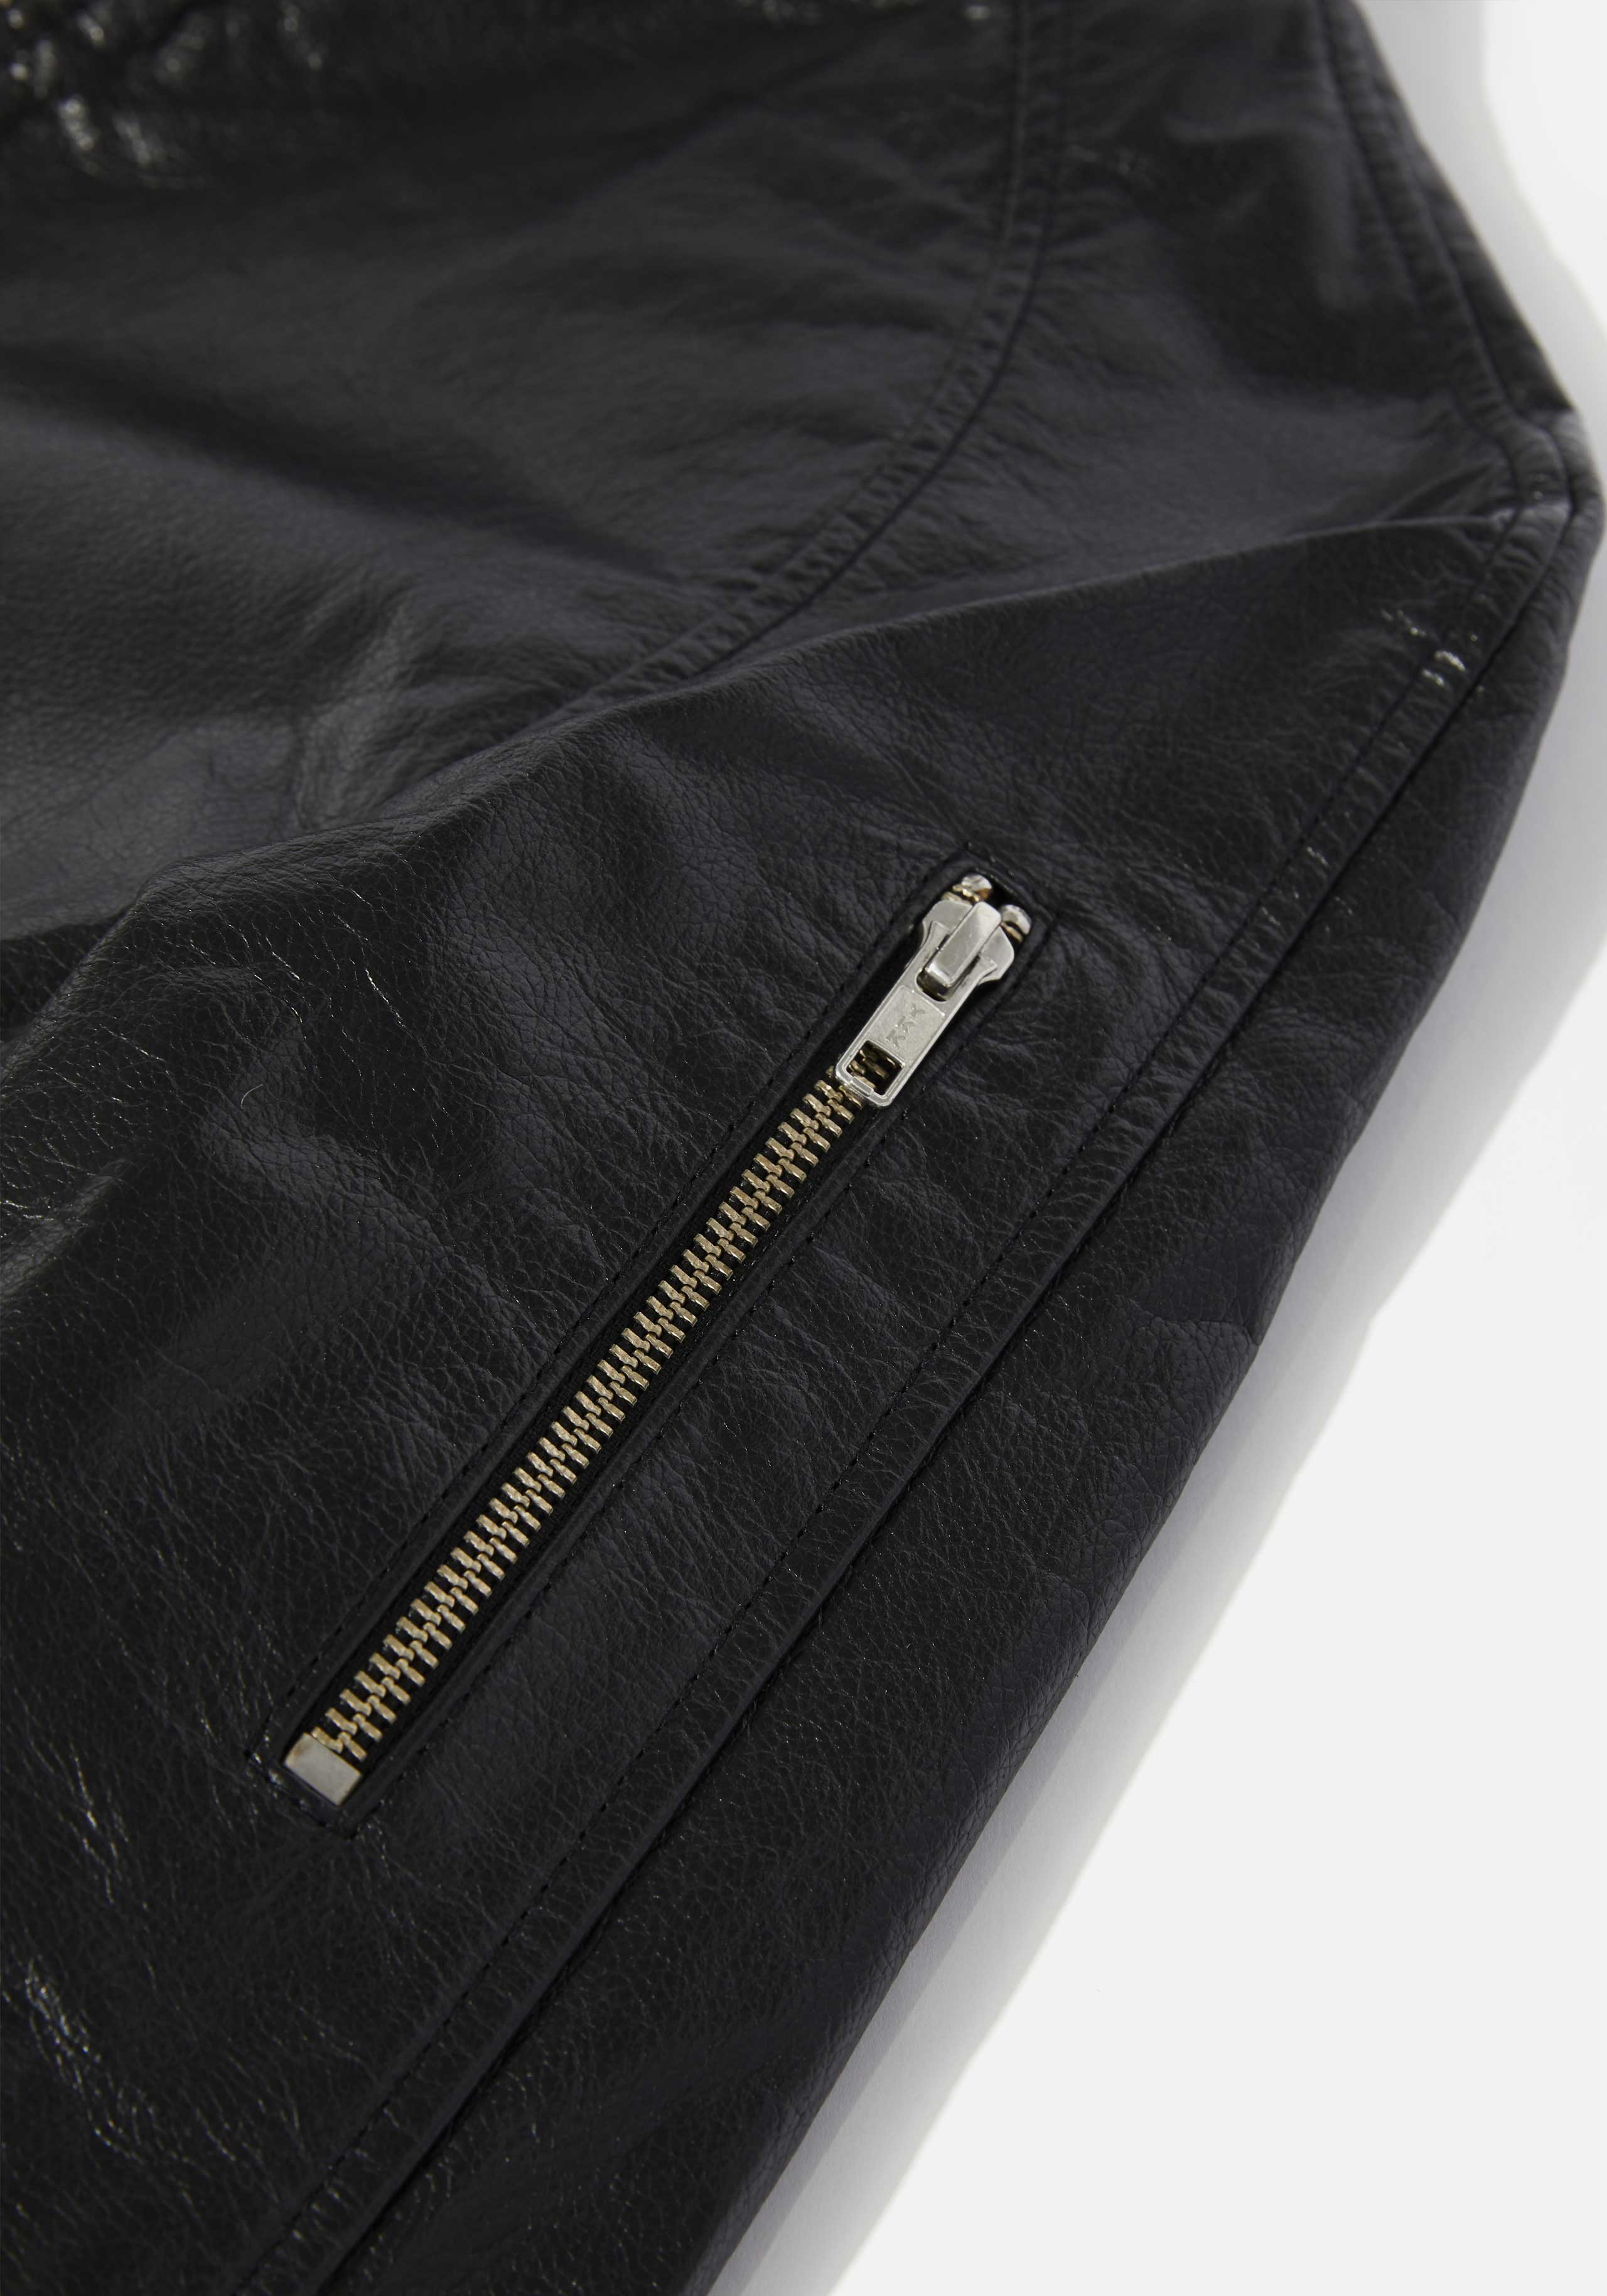 mki pdm leather bomber 6